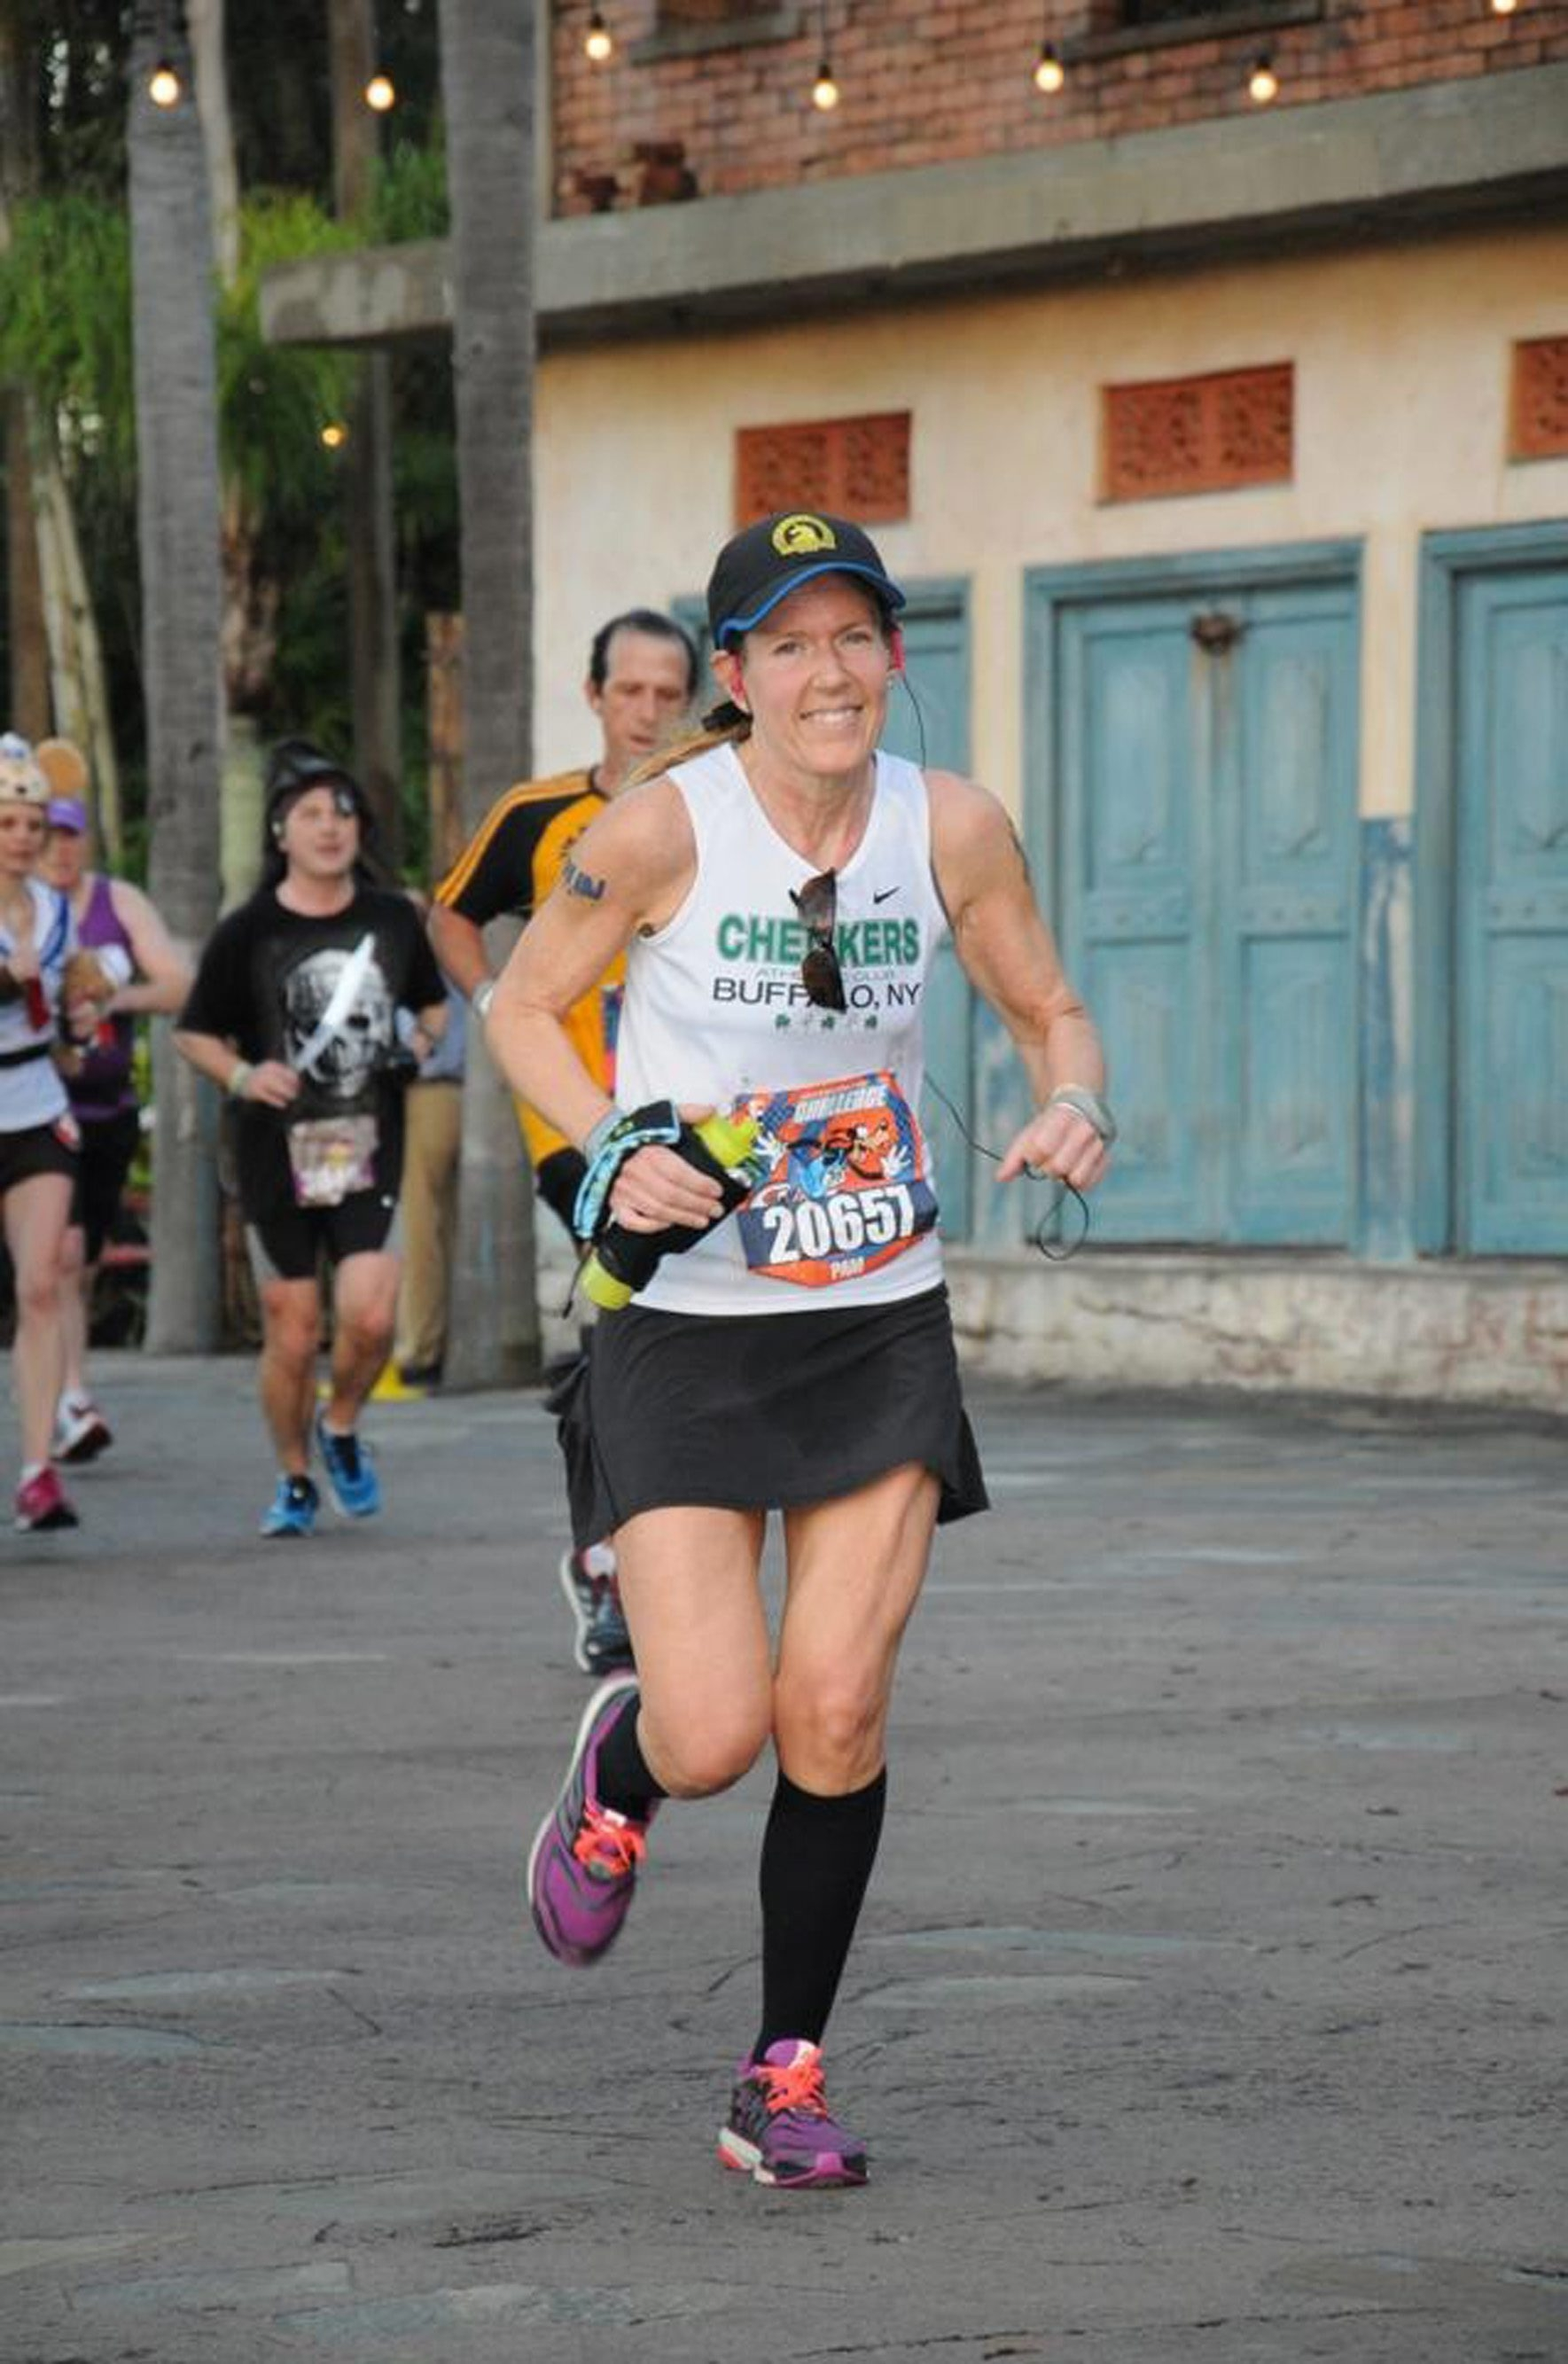 Pam Tymchak finished last year's race just before the first explosion.